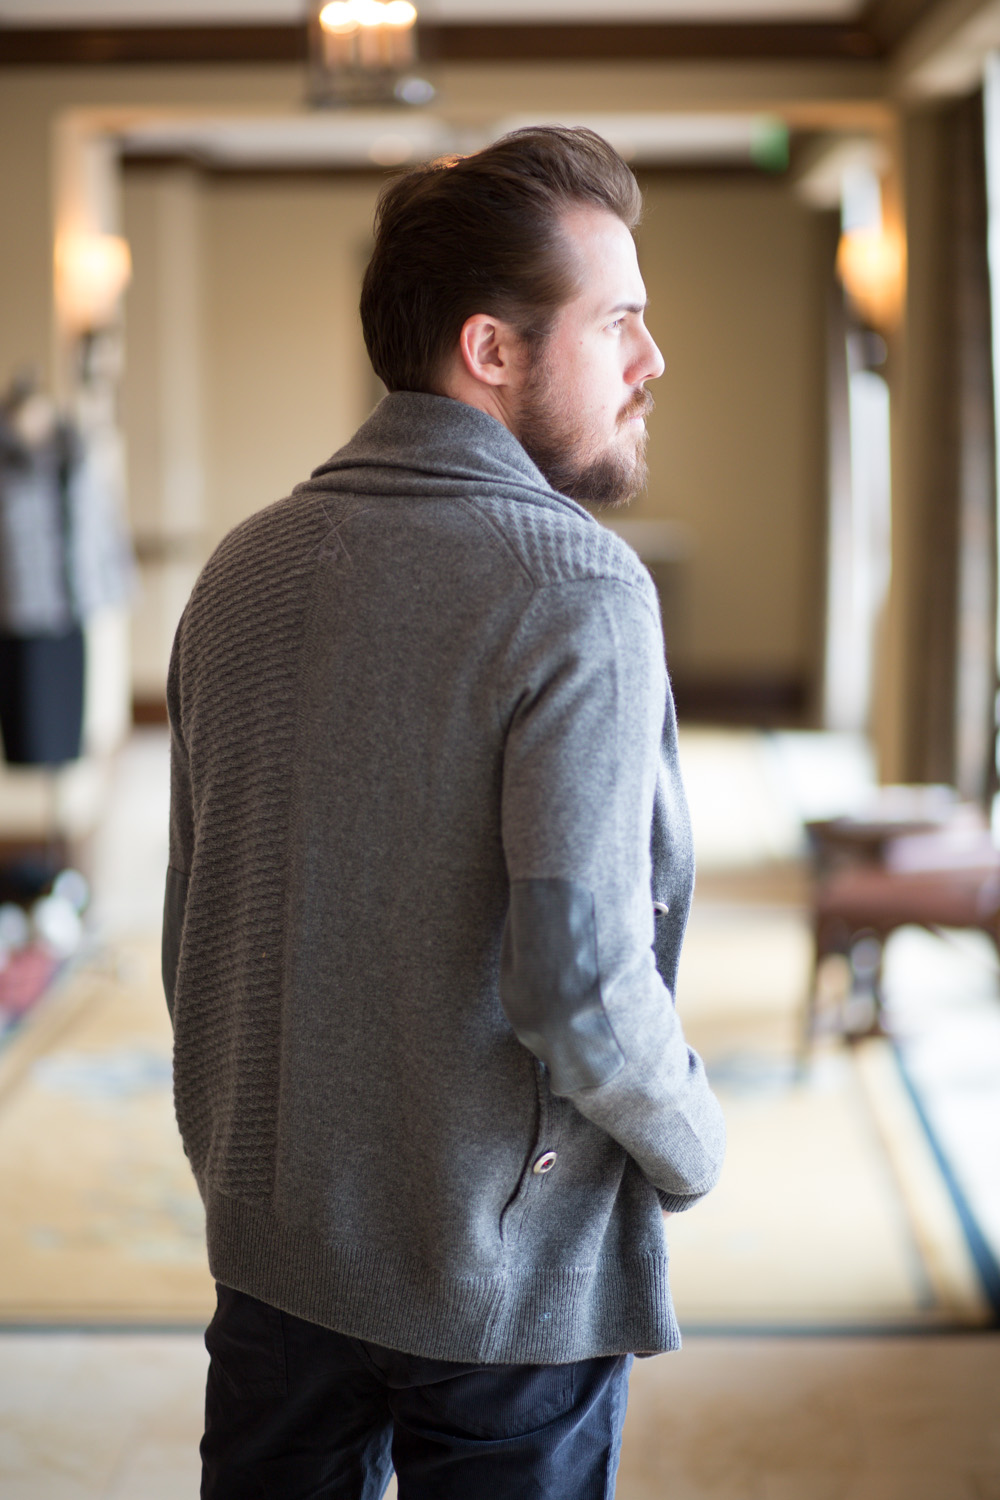 Under Armor Cardigan - Menswear Fashion Blog